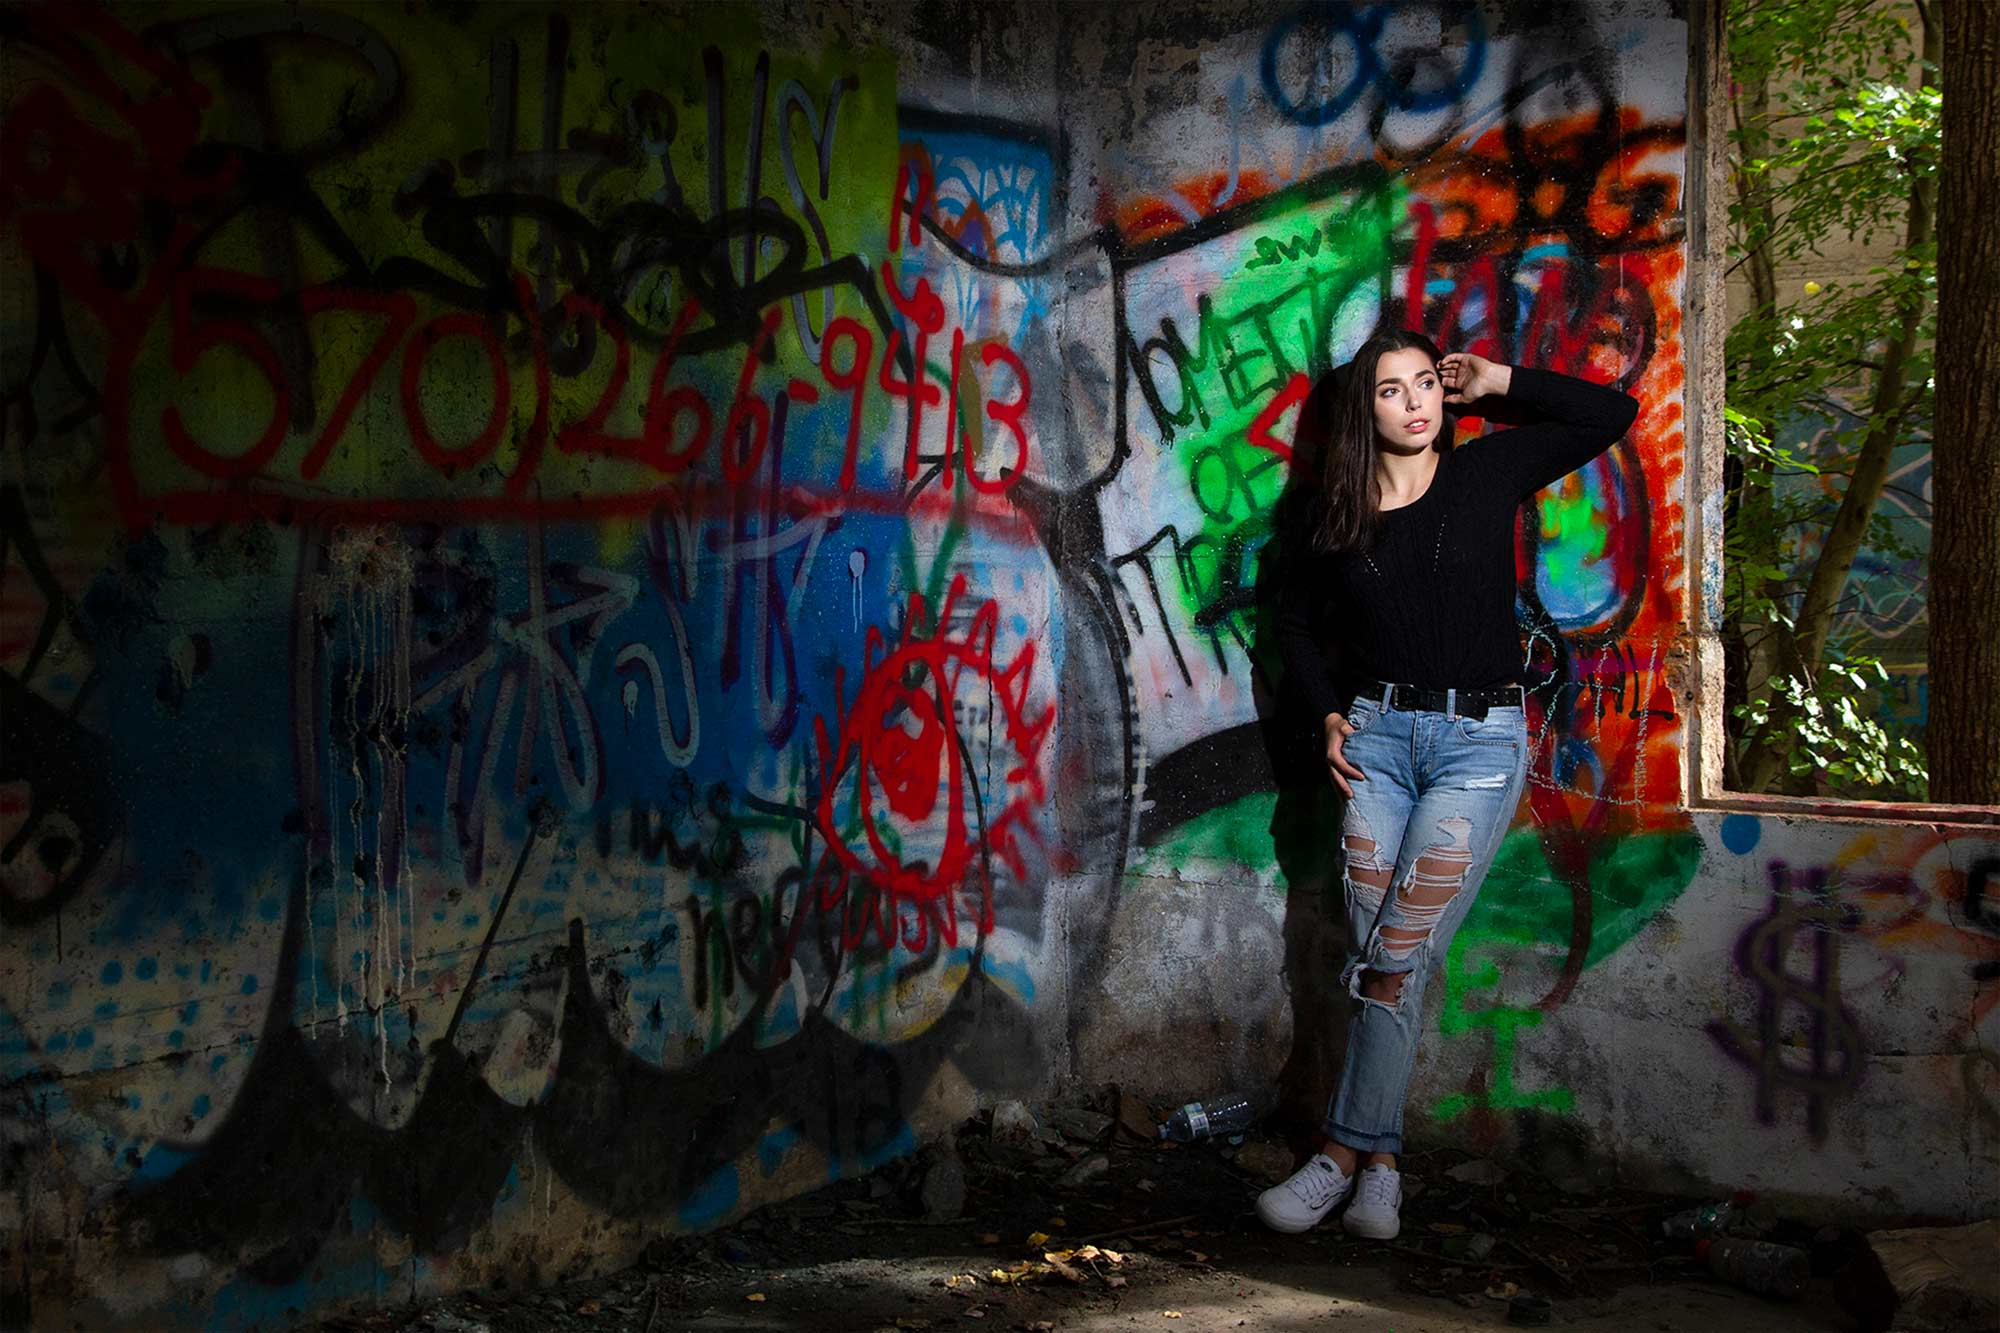 Dallas High School Senior Portraits, Concrete City, Wilkes-Barre, Nanticoke, PA